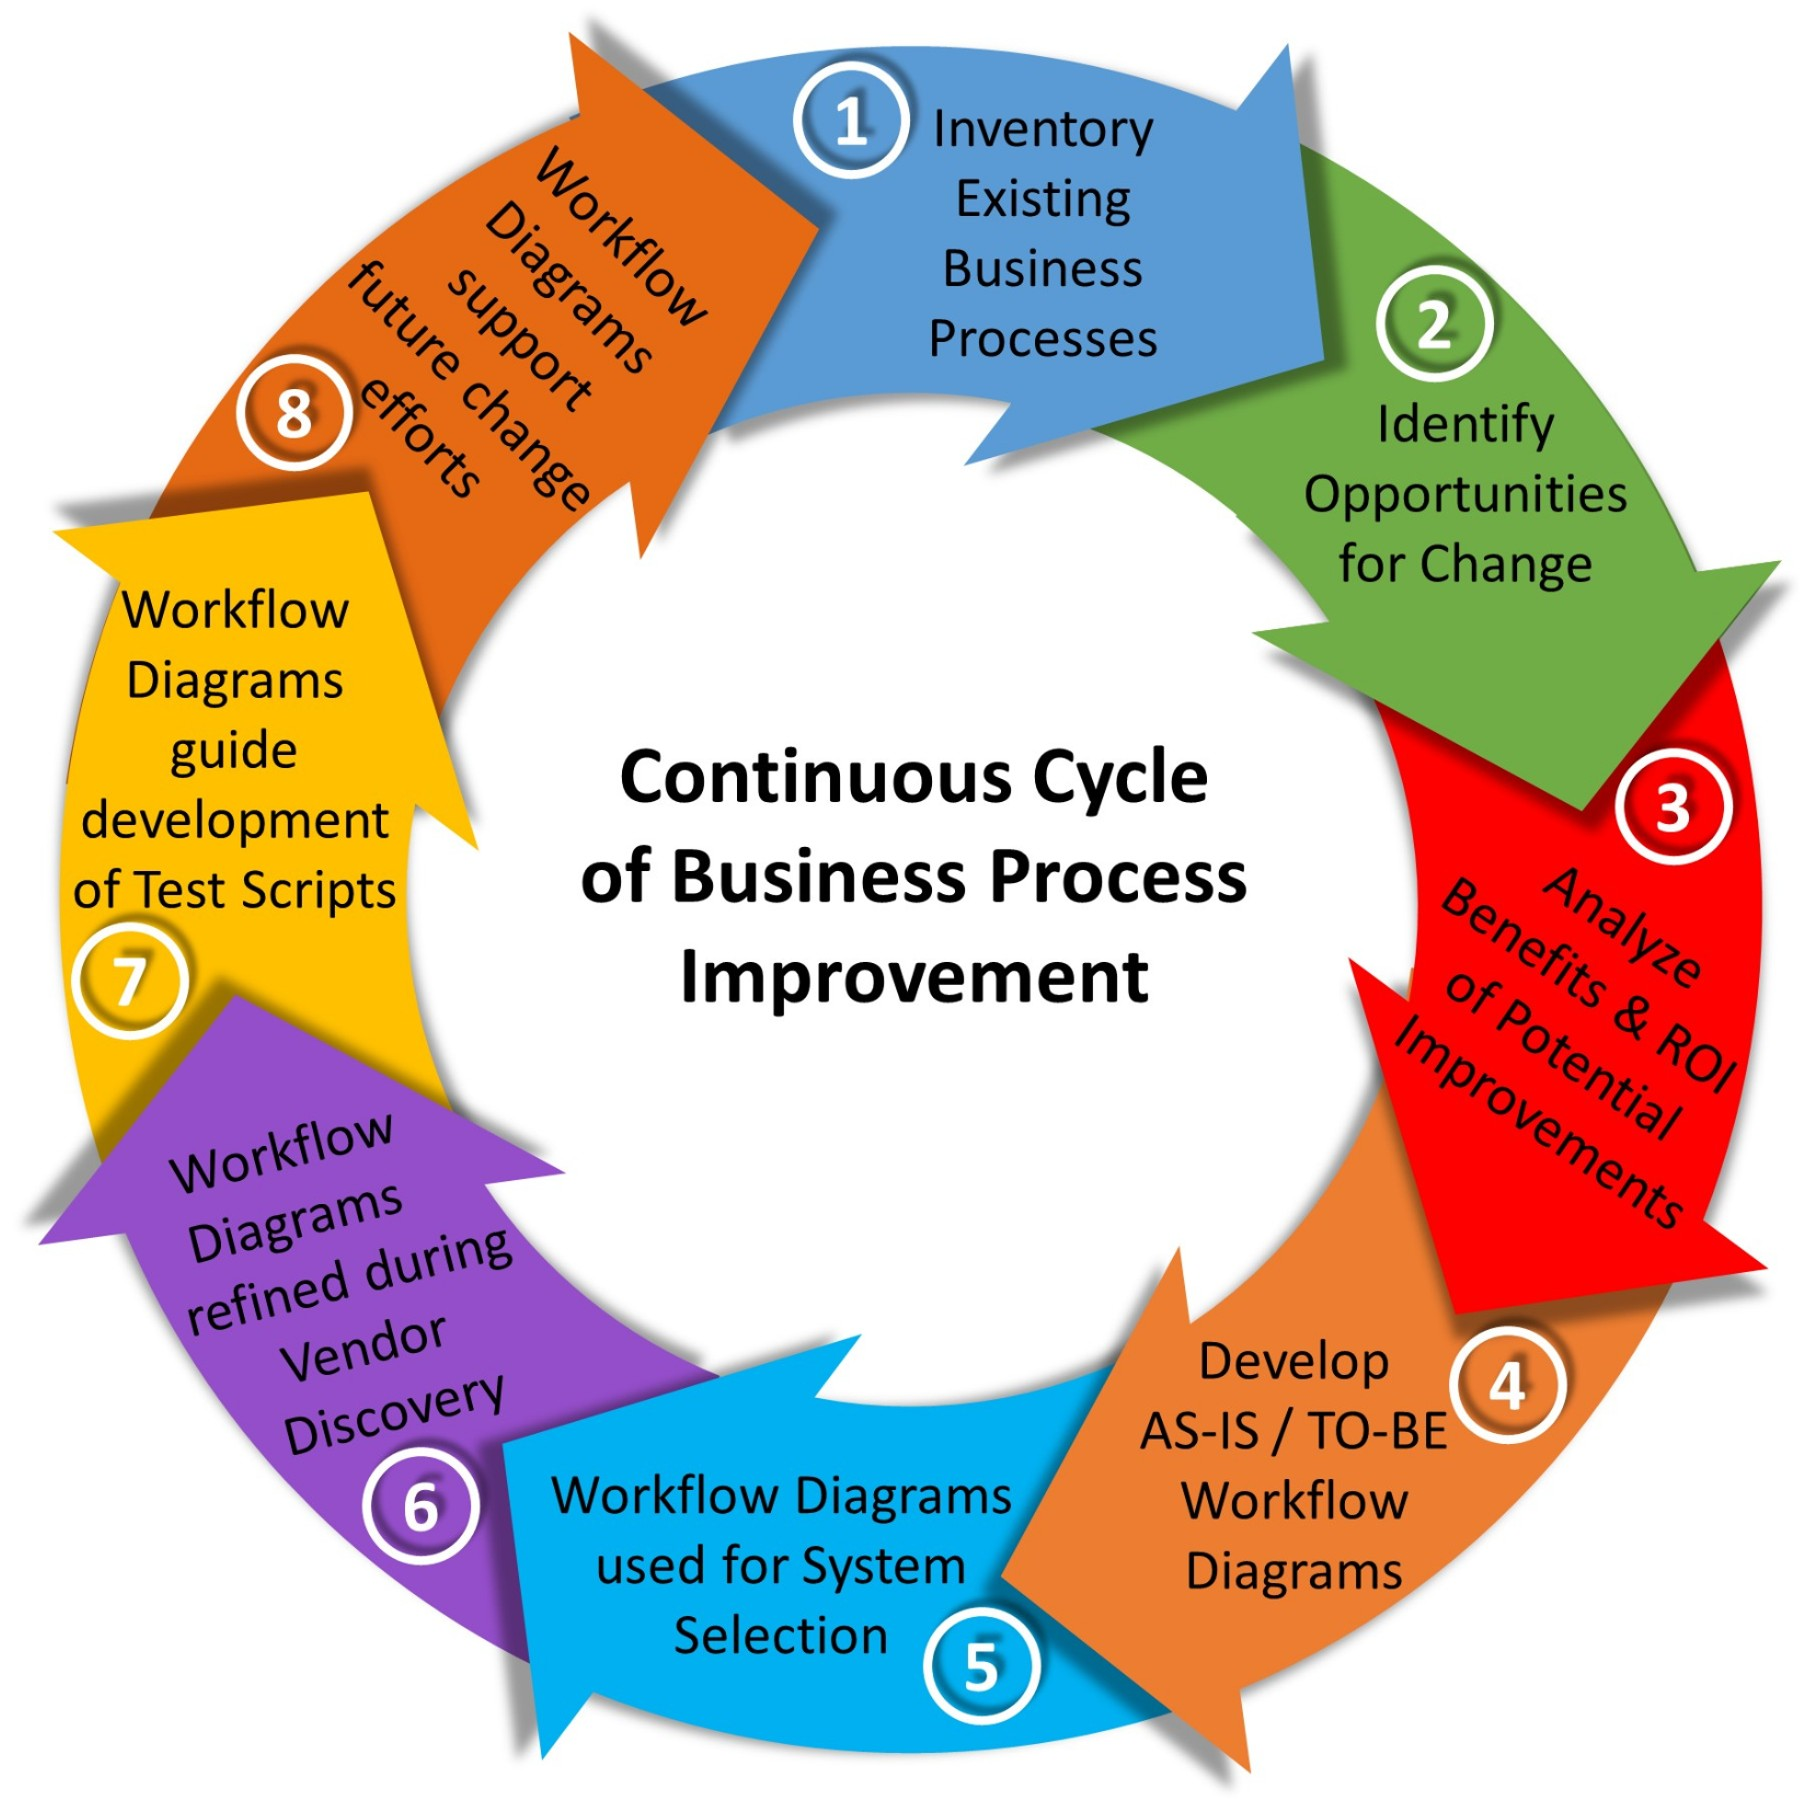 Managing Change to a Continuously Improving Culture